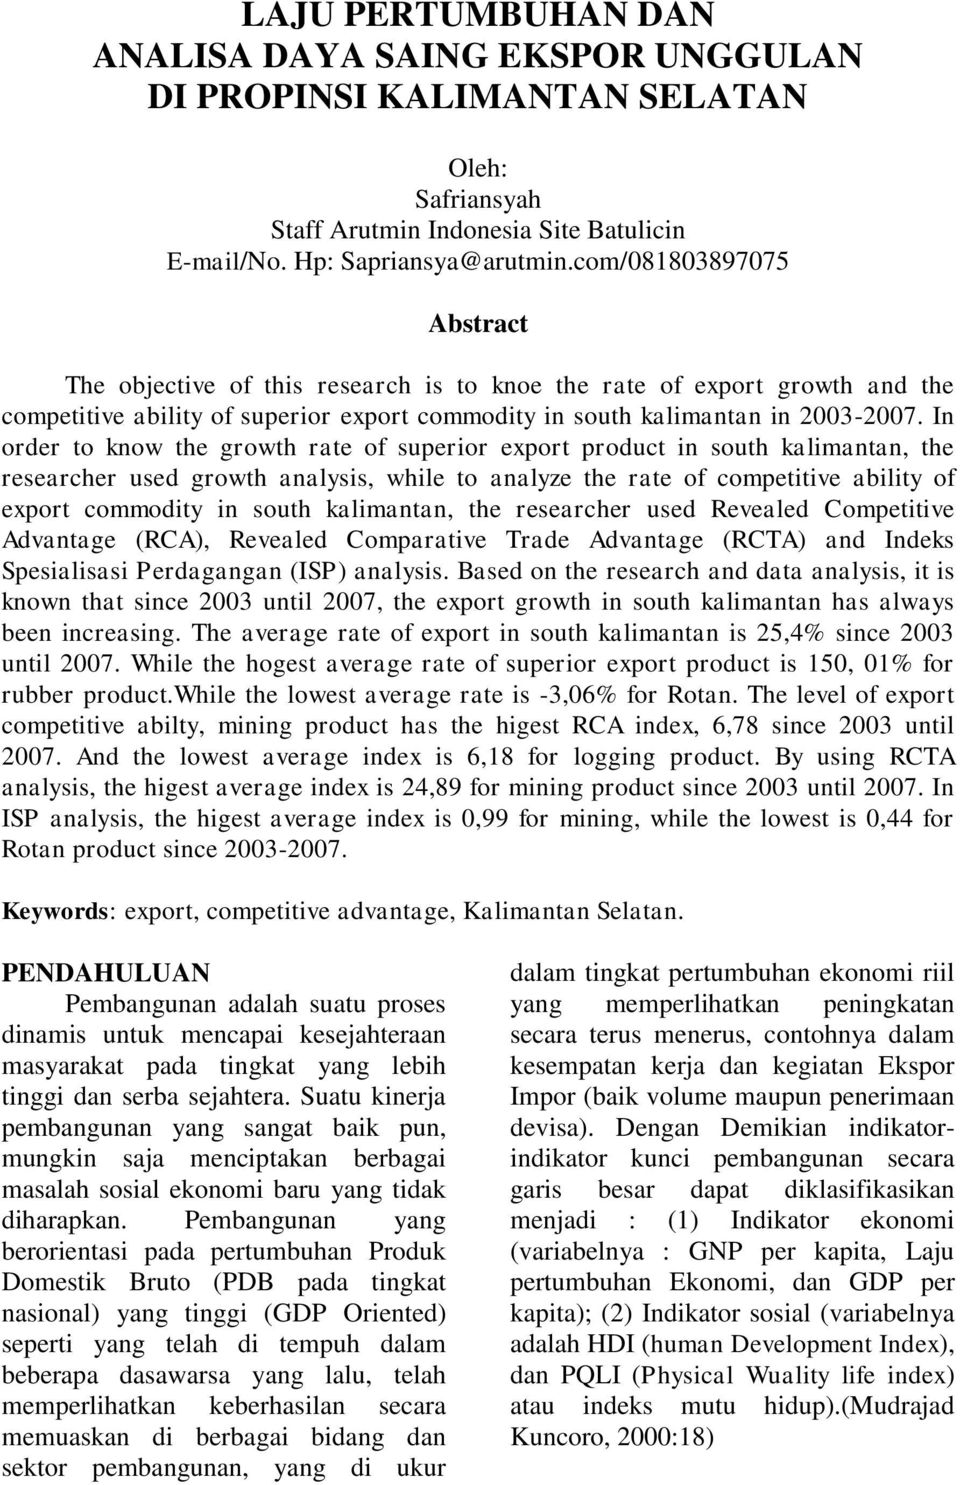 In order to know the growth rate of superior export product in south kalimantan, the researcher used growth analysis, while to analyze the rate of competitive ability of export commodity in south